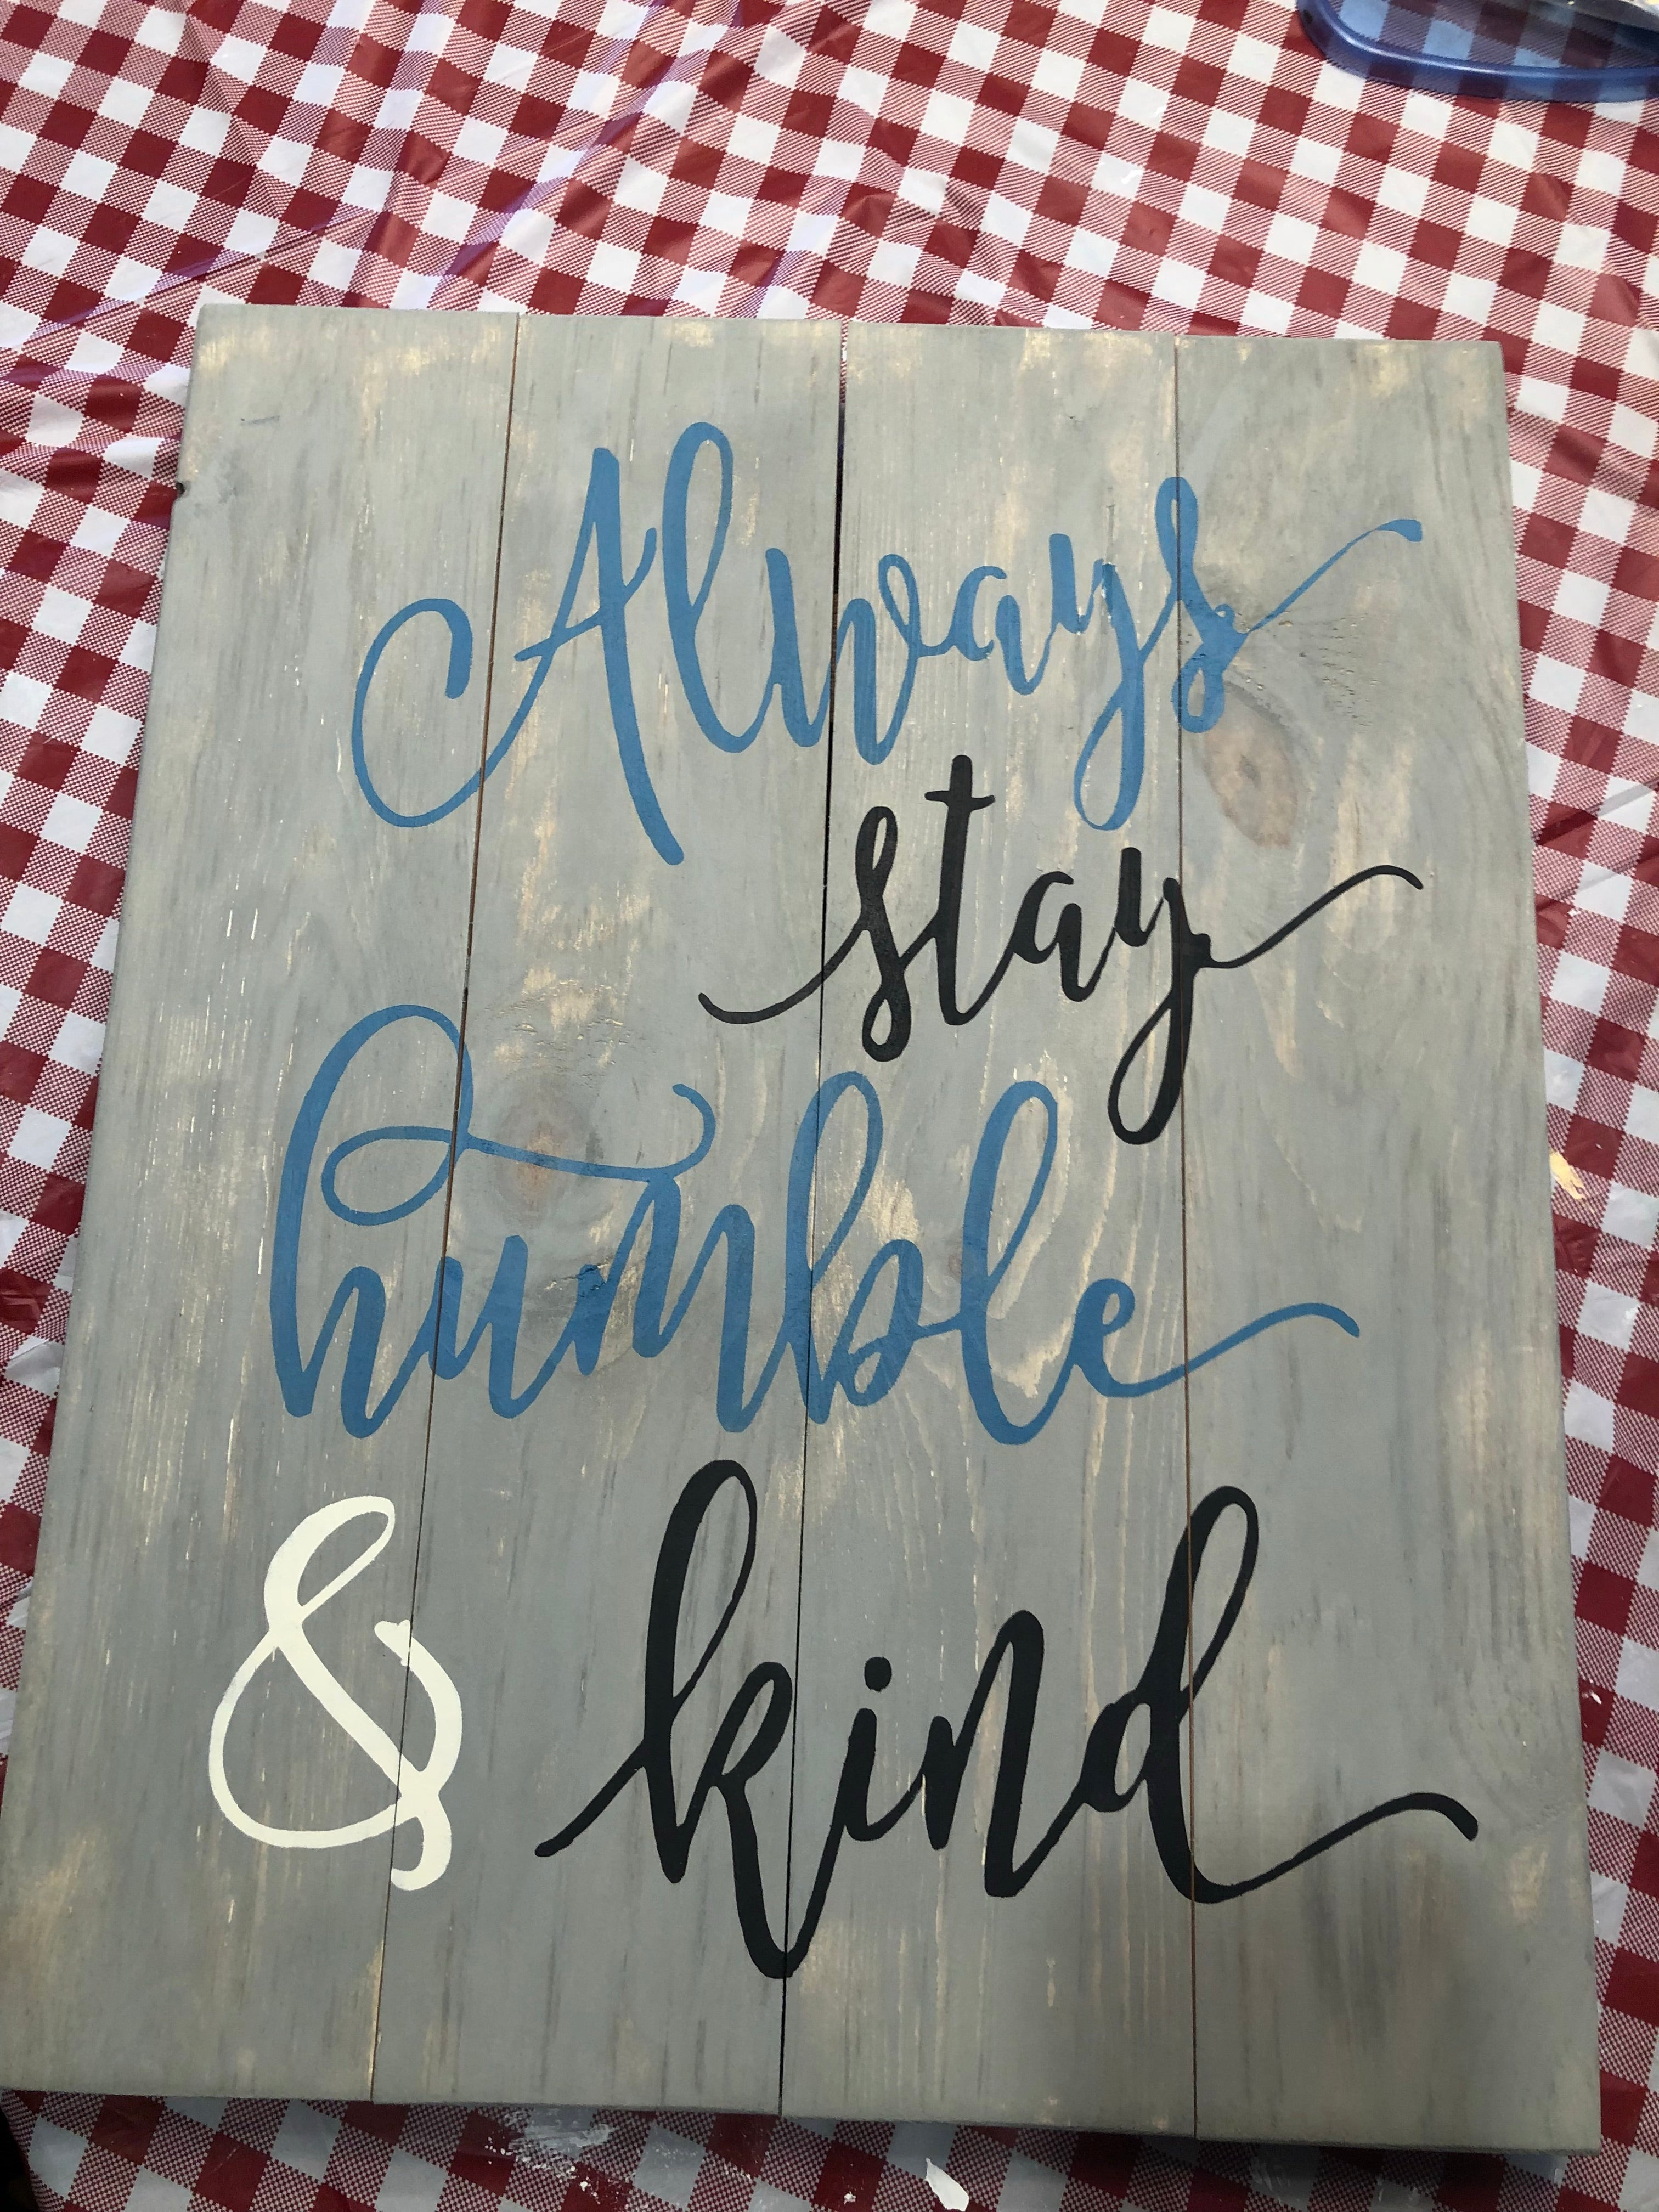 Always stay humble and kind- all cursive